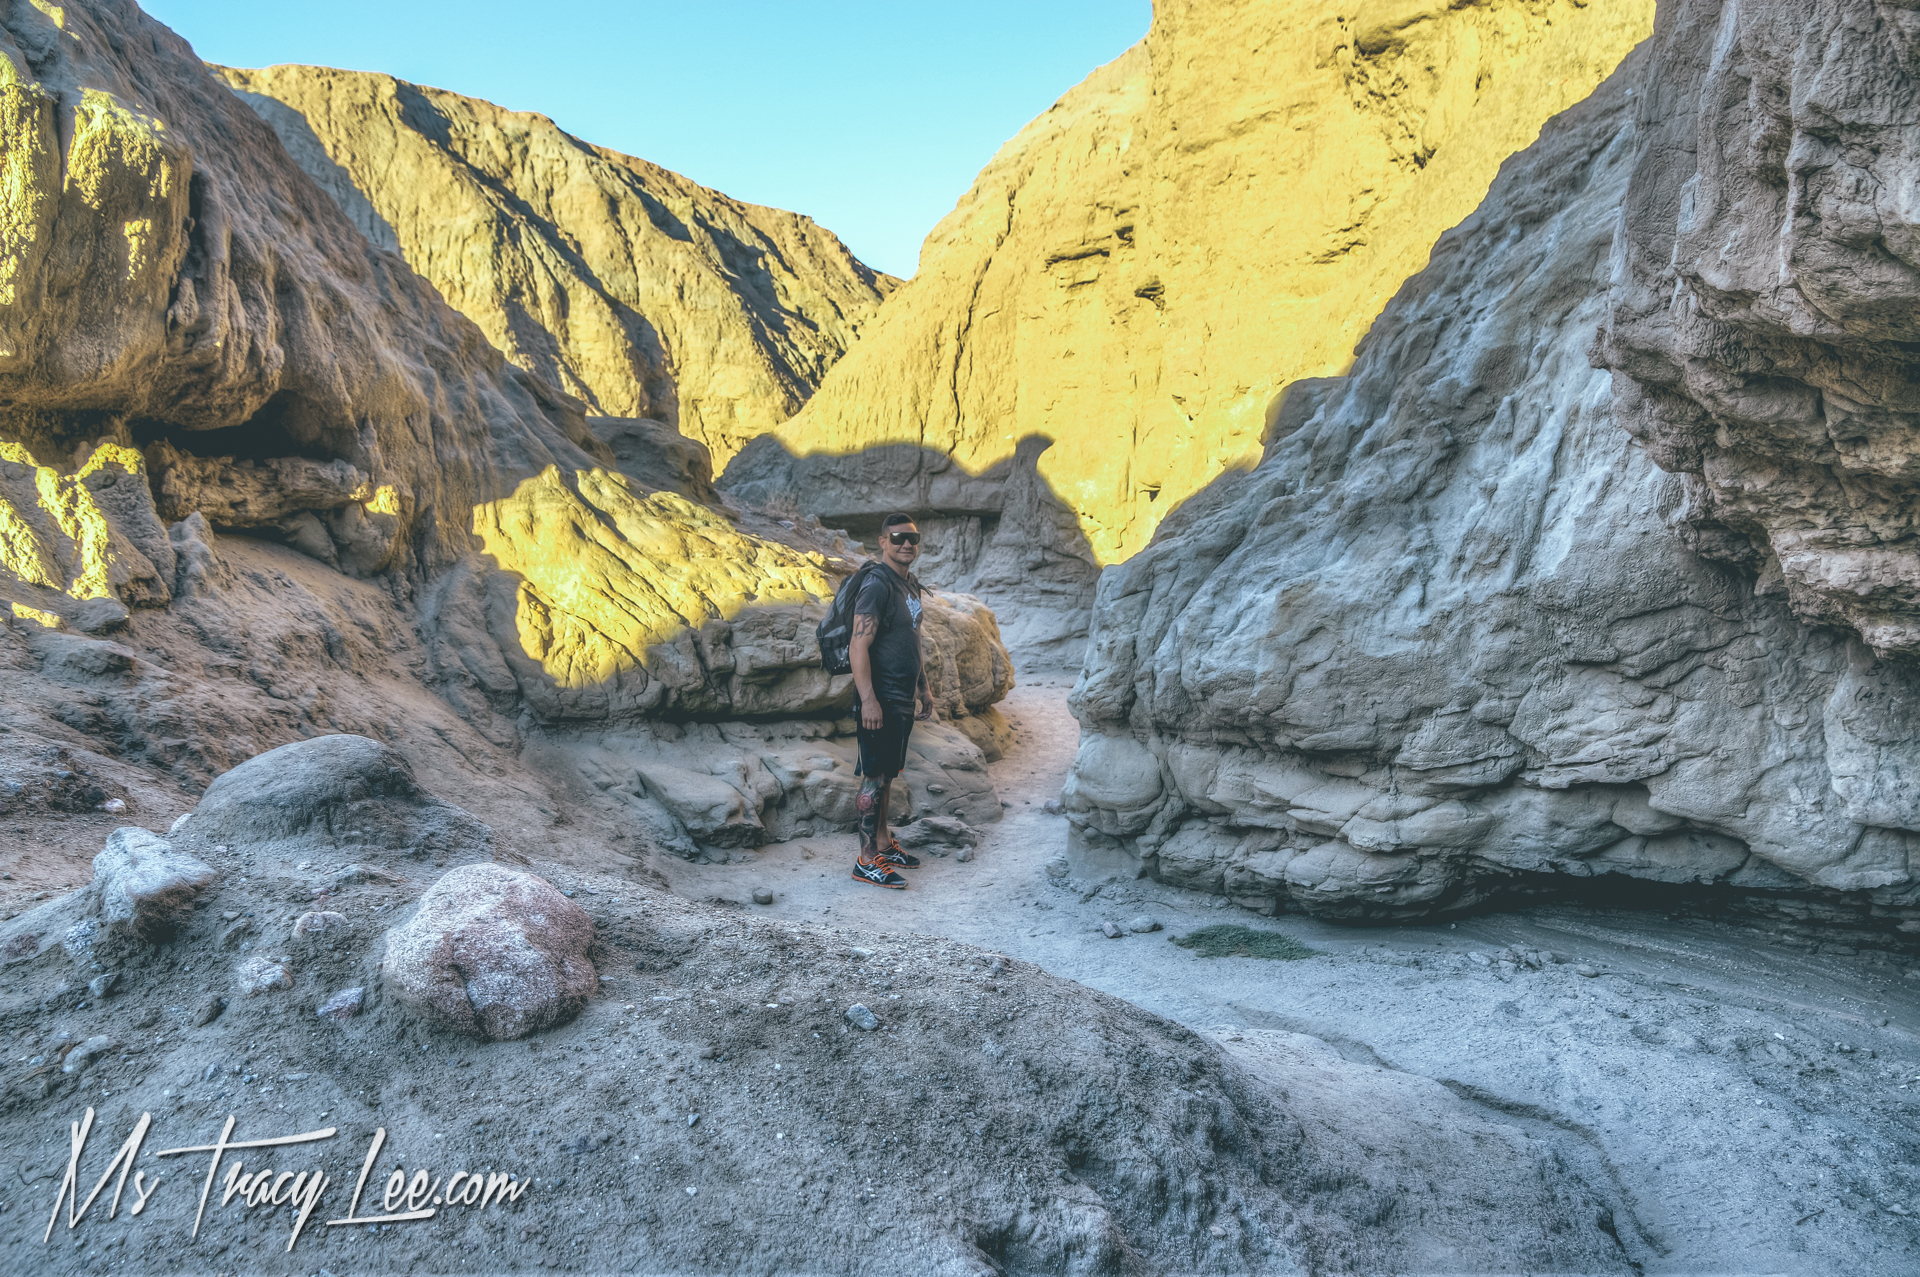 In Search of Mythical Creatures in Anza Borrego